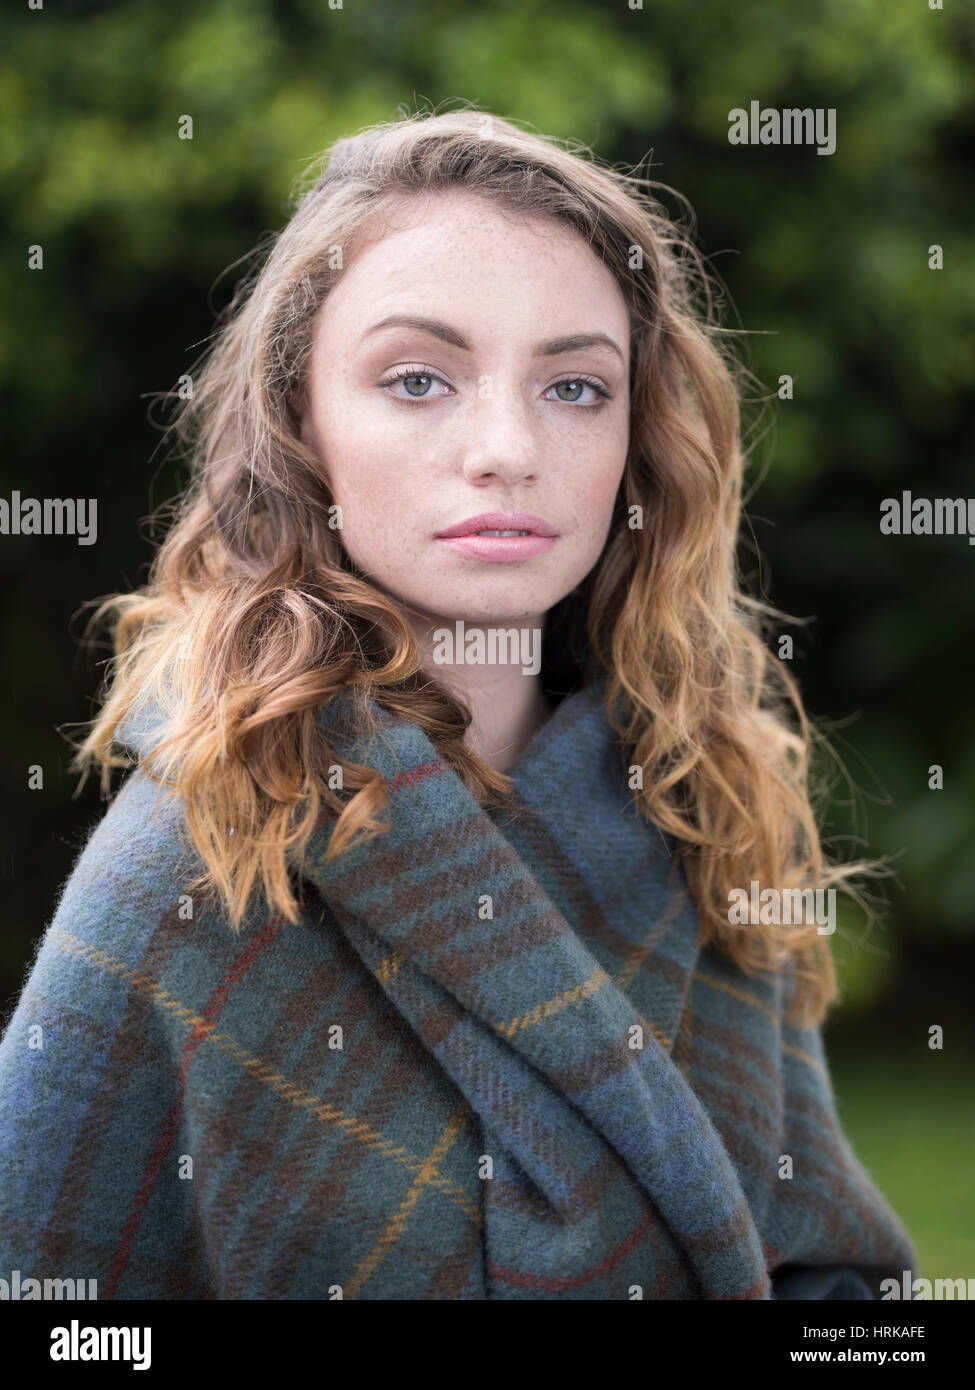 Young woman with Antique Hunting Stewart tartan shawl - Stock Image